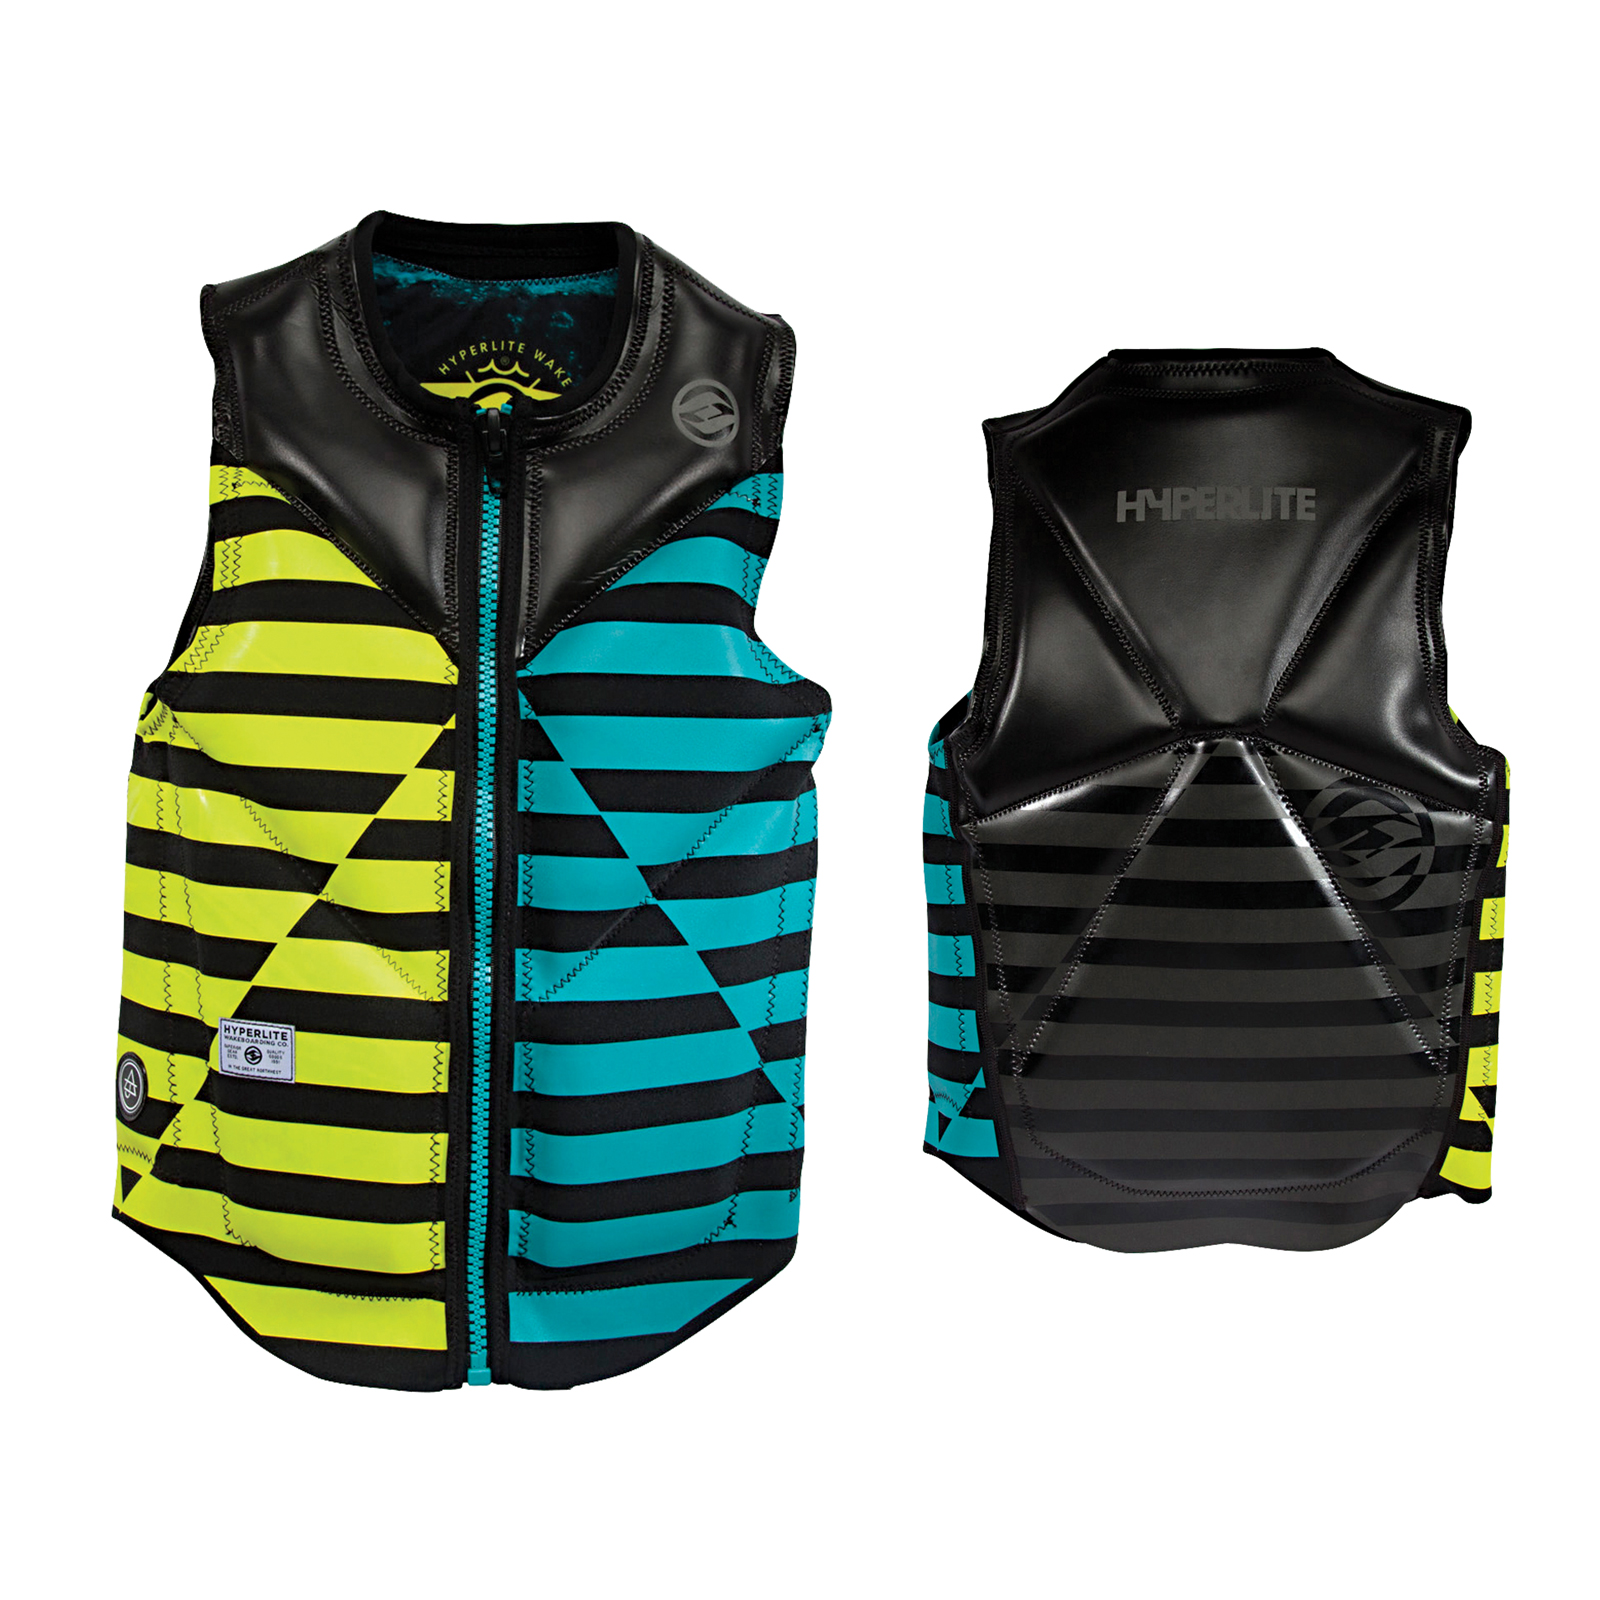 AJ ELECTRIC VEST HYPERLITE 2017